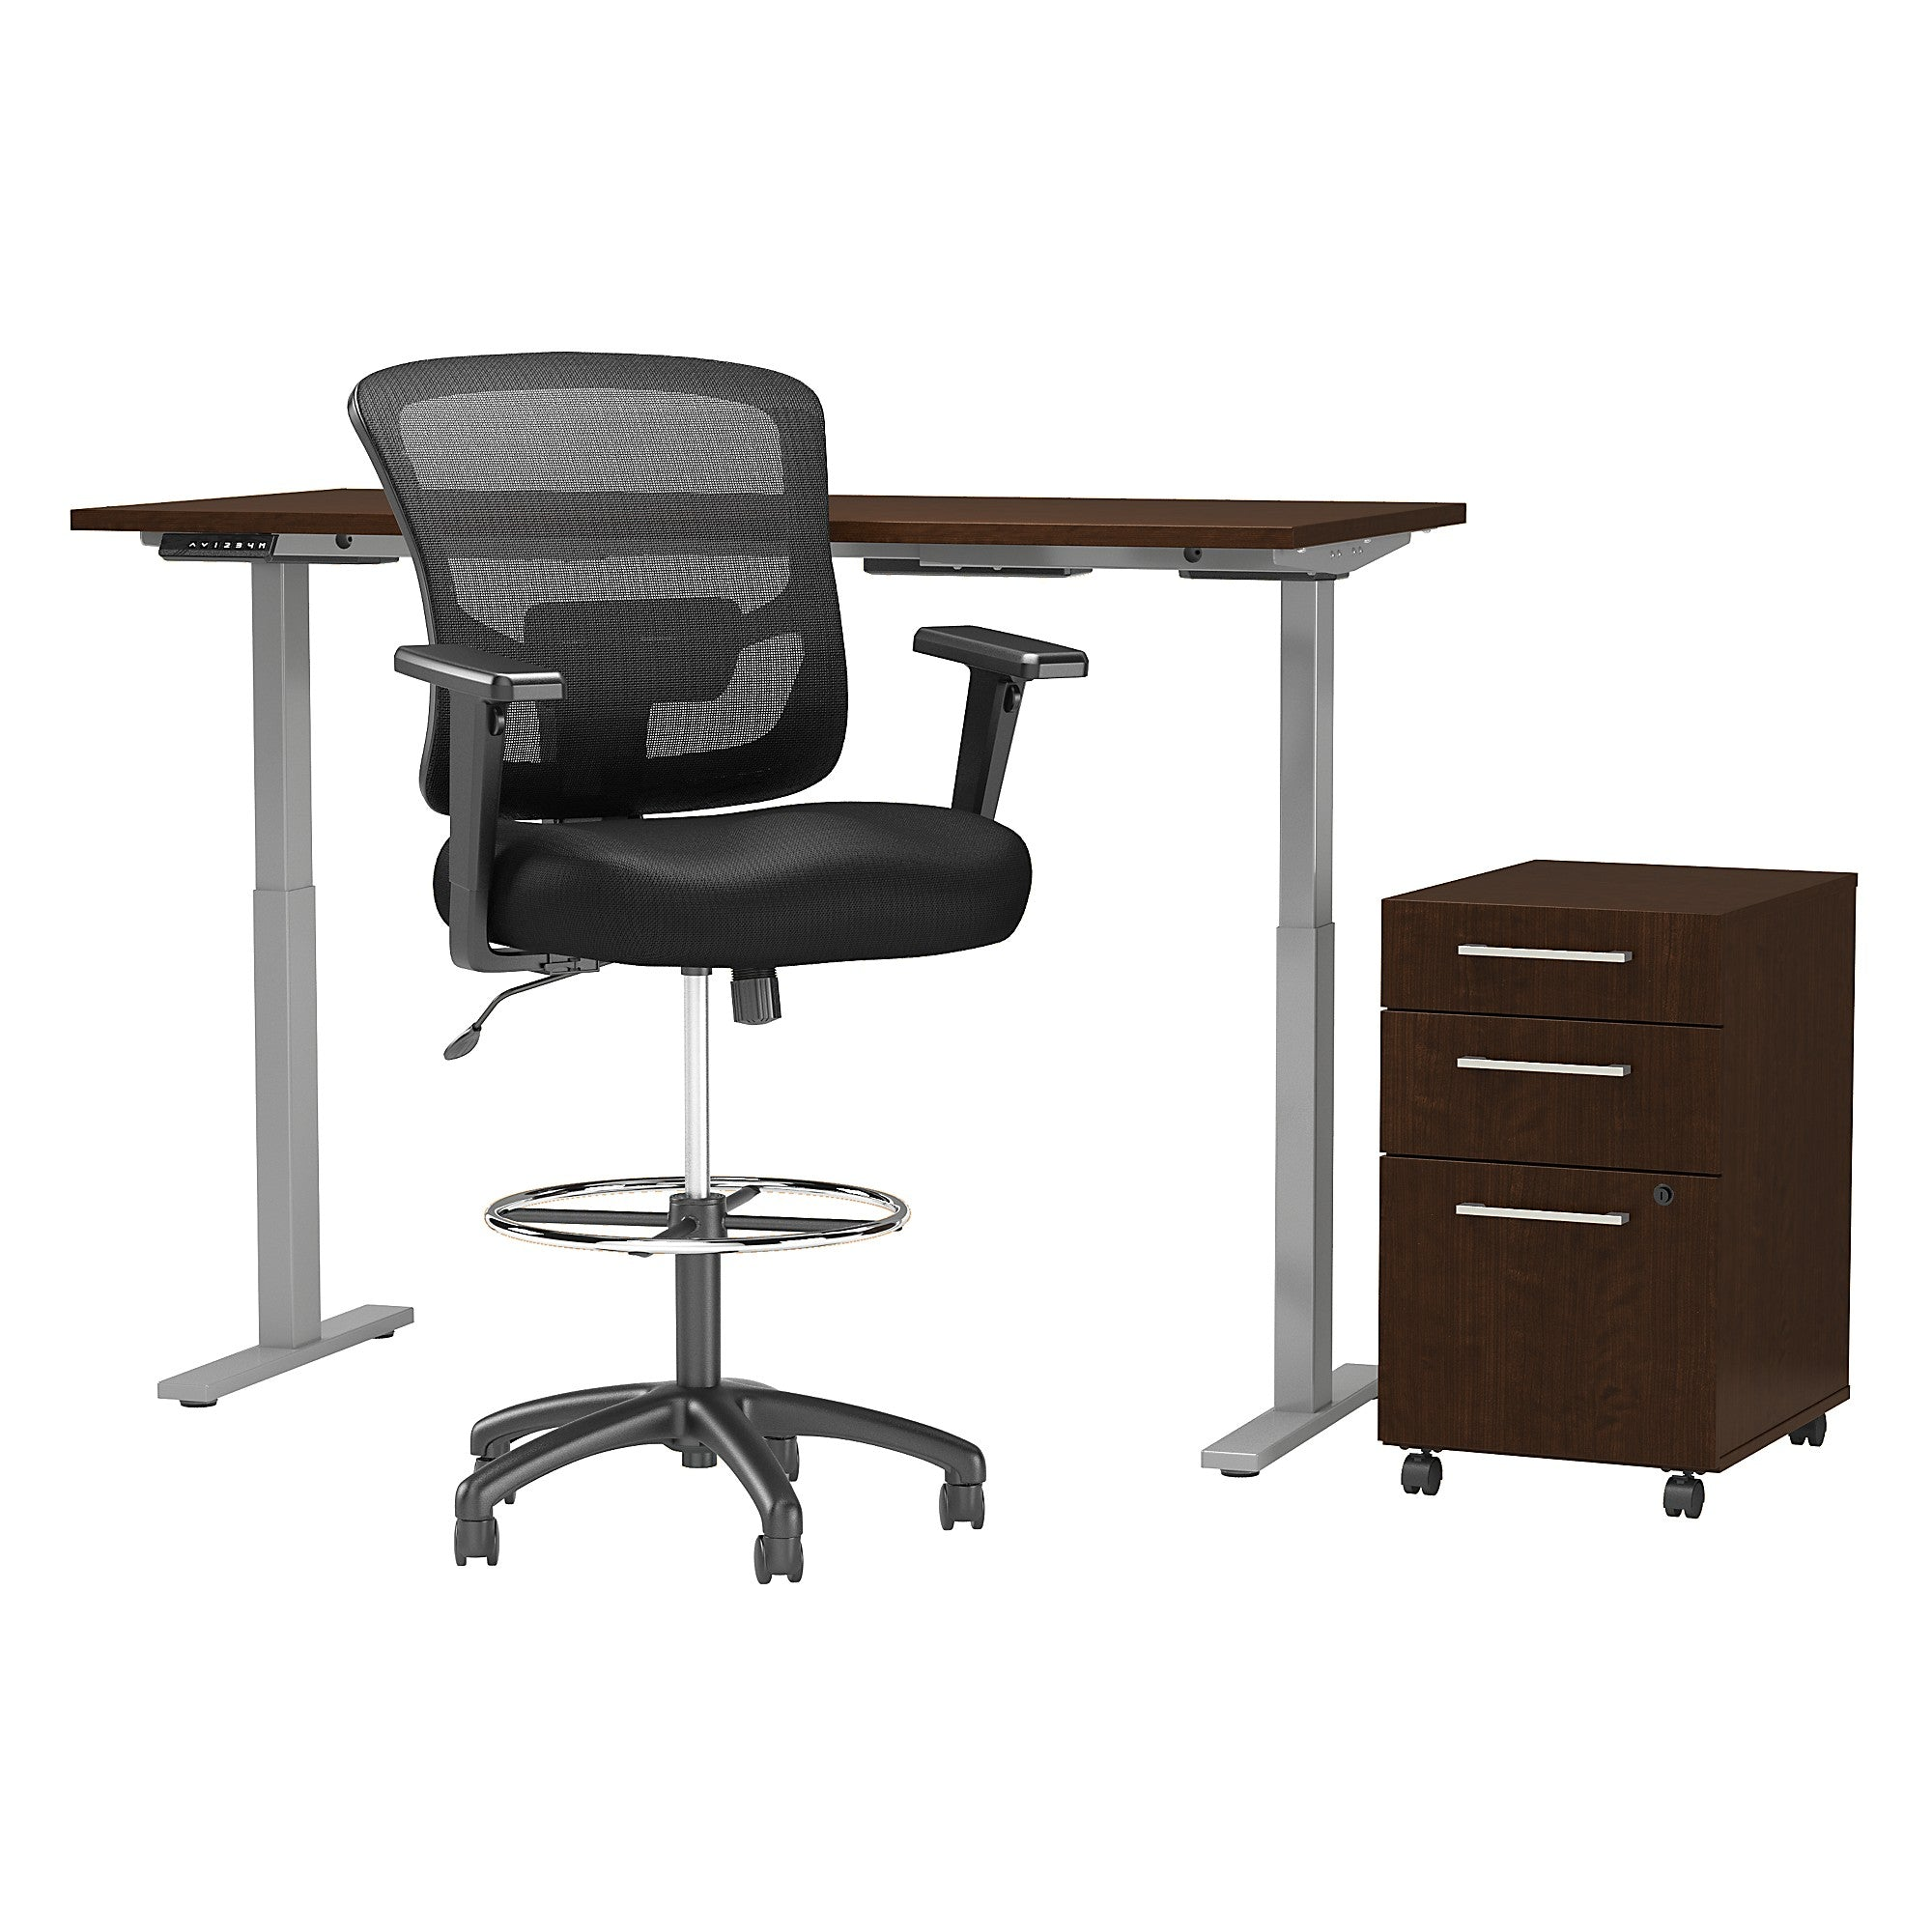 Electric Height Adjustable Standing Desk with Storage & Drafting Chair